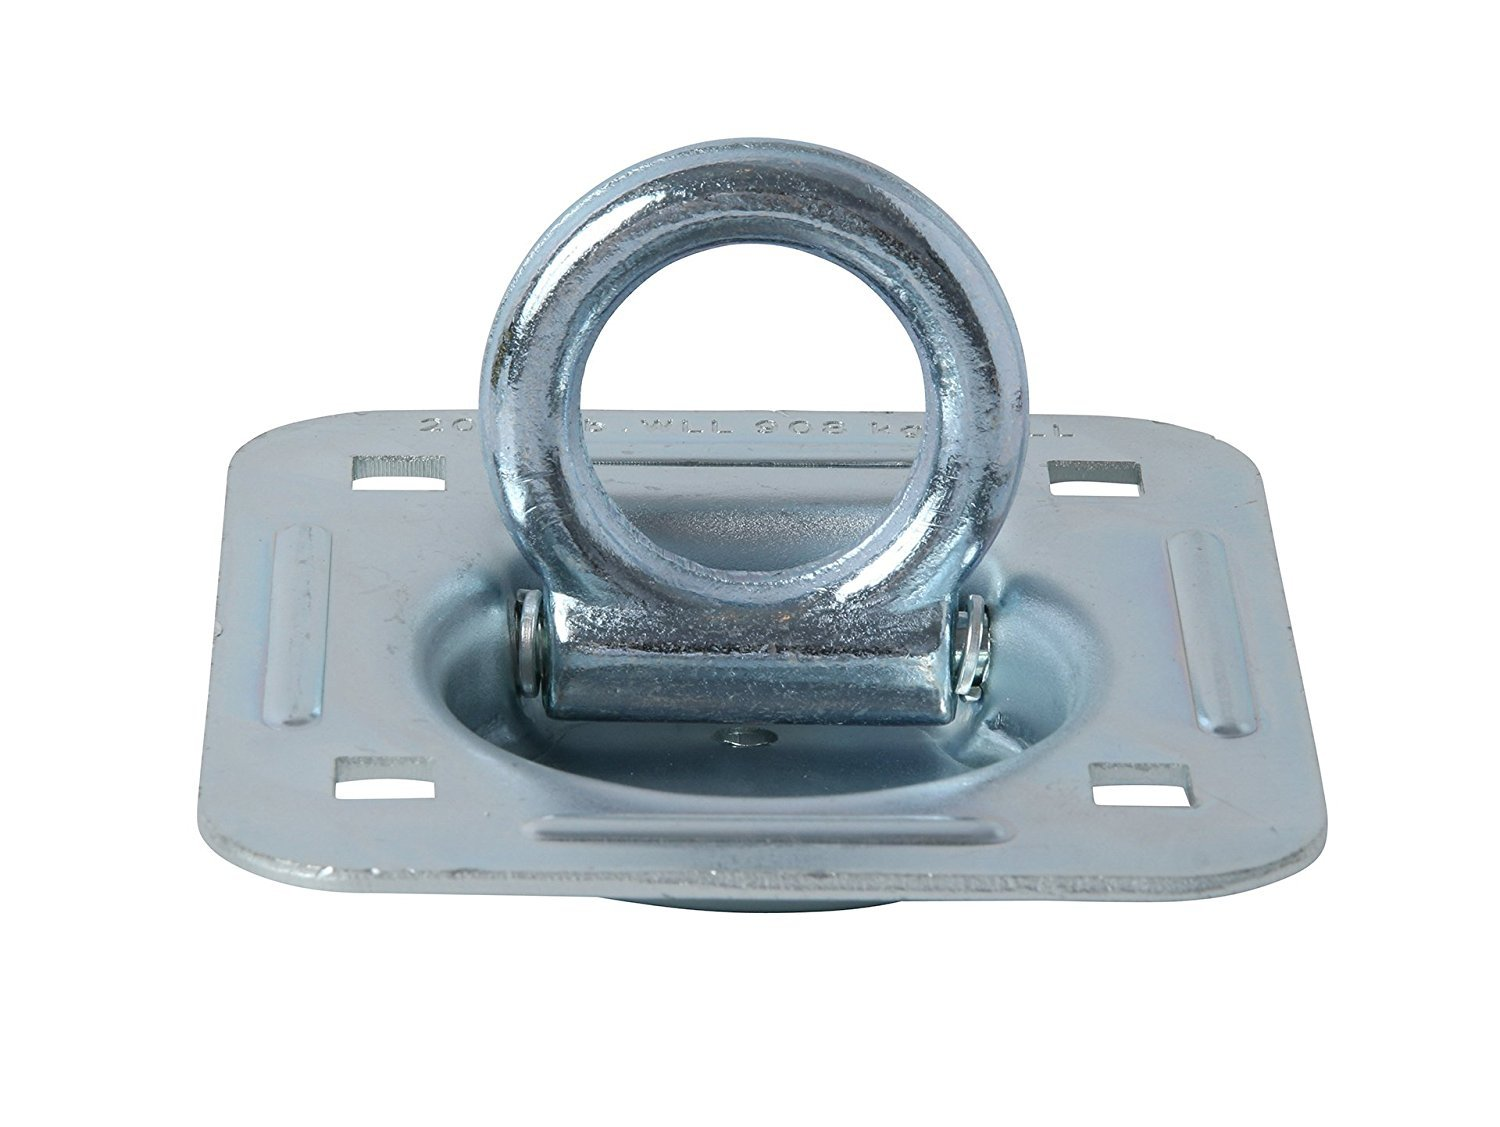 Heavy Duty Tiedown D-Ring to Secure Cargo in Semis D Ring Tie-Down Anchor Trailers Flatbeds Large Rotating Recessed Pan Fitting with D-Ring That Swivels 360 Degrees WLL 1,666 Pounds